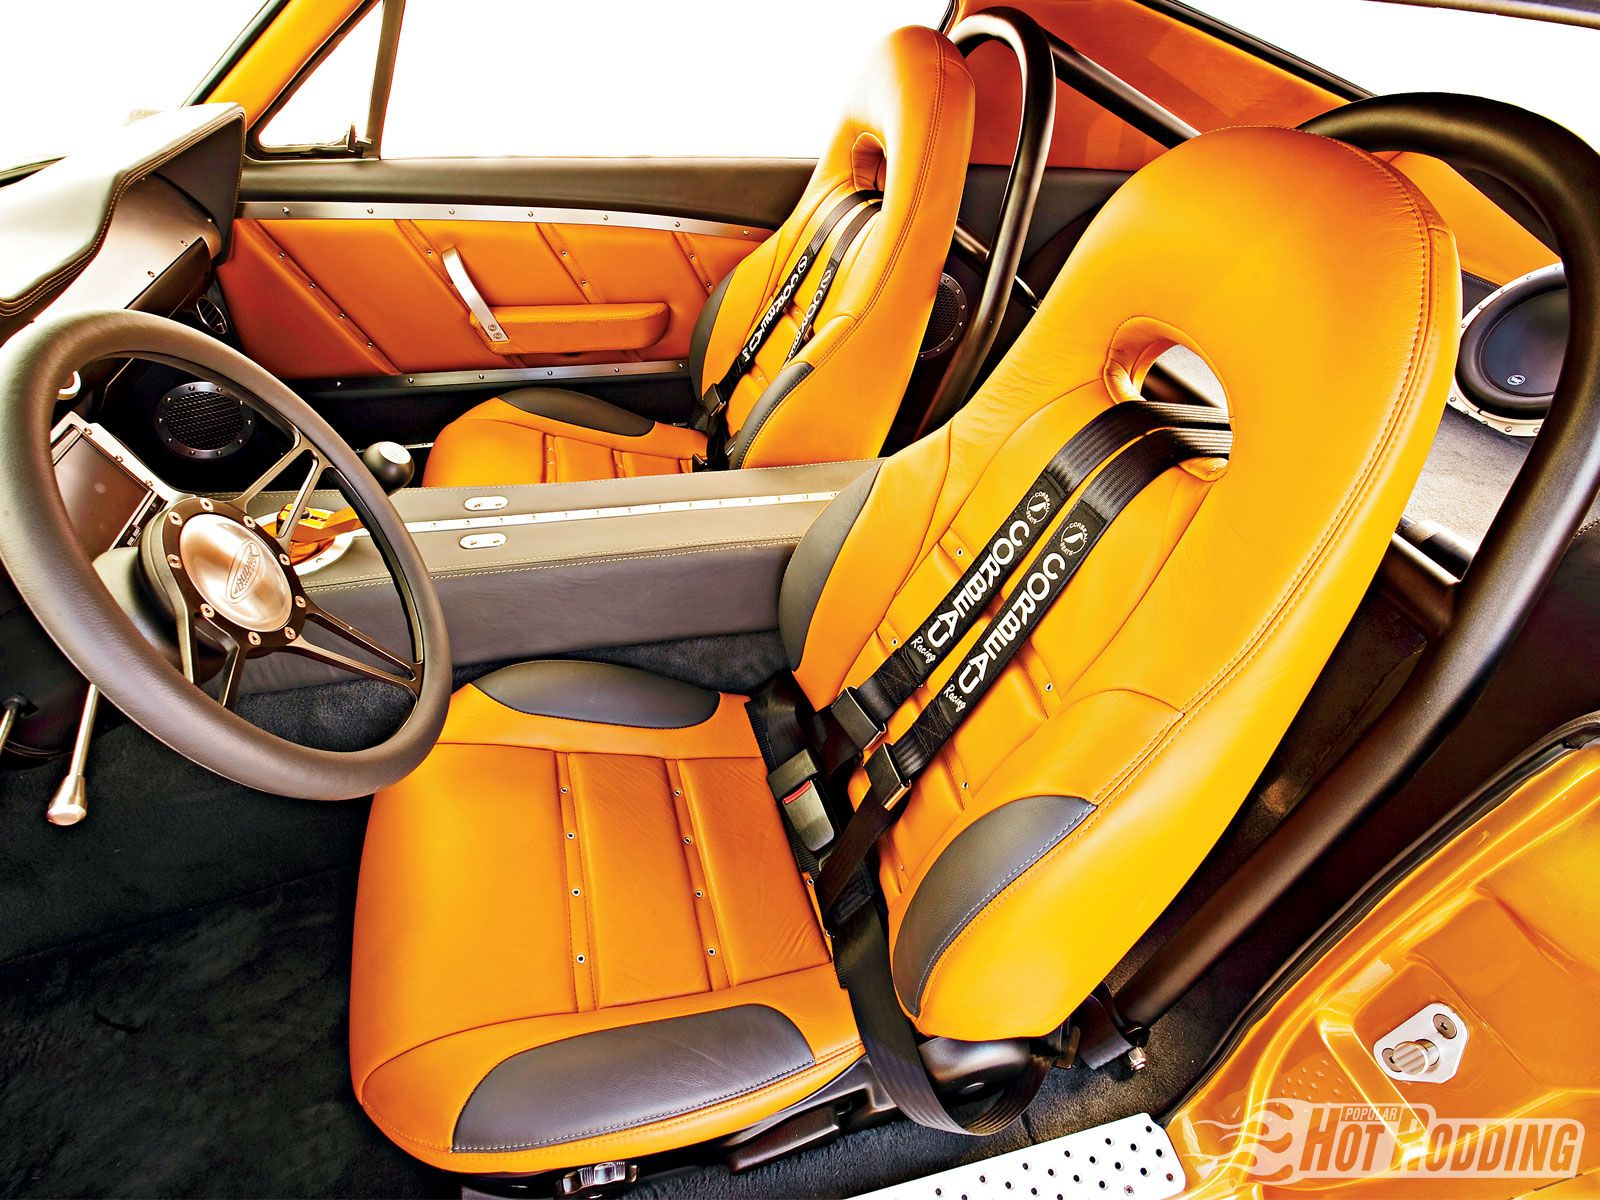 67 Mustang Fastback Butterscotch And Grey Interior Custom Dash